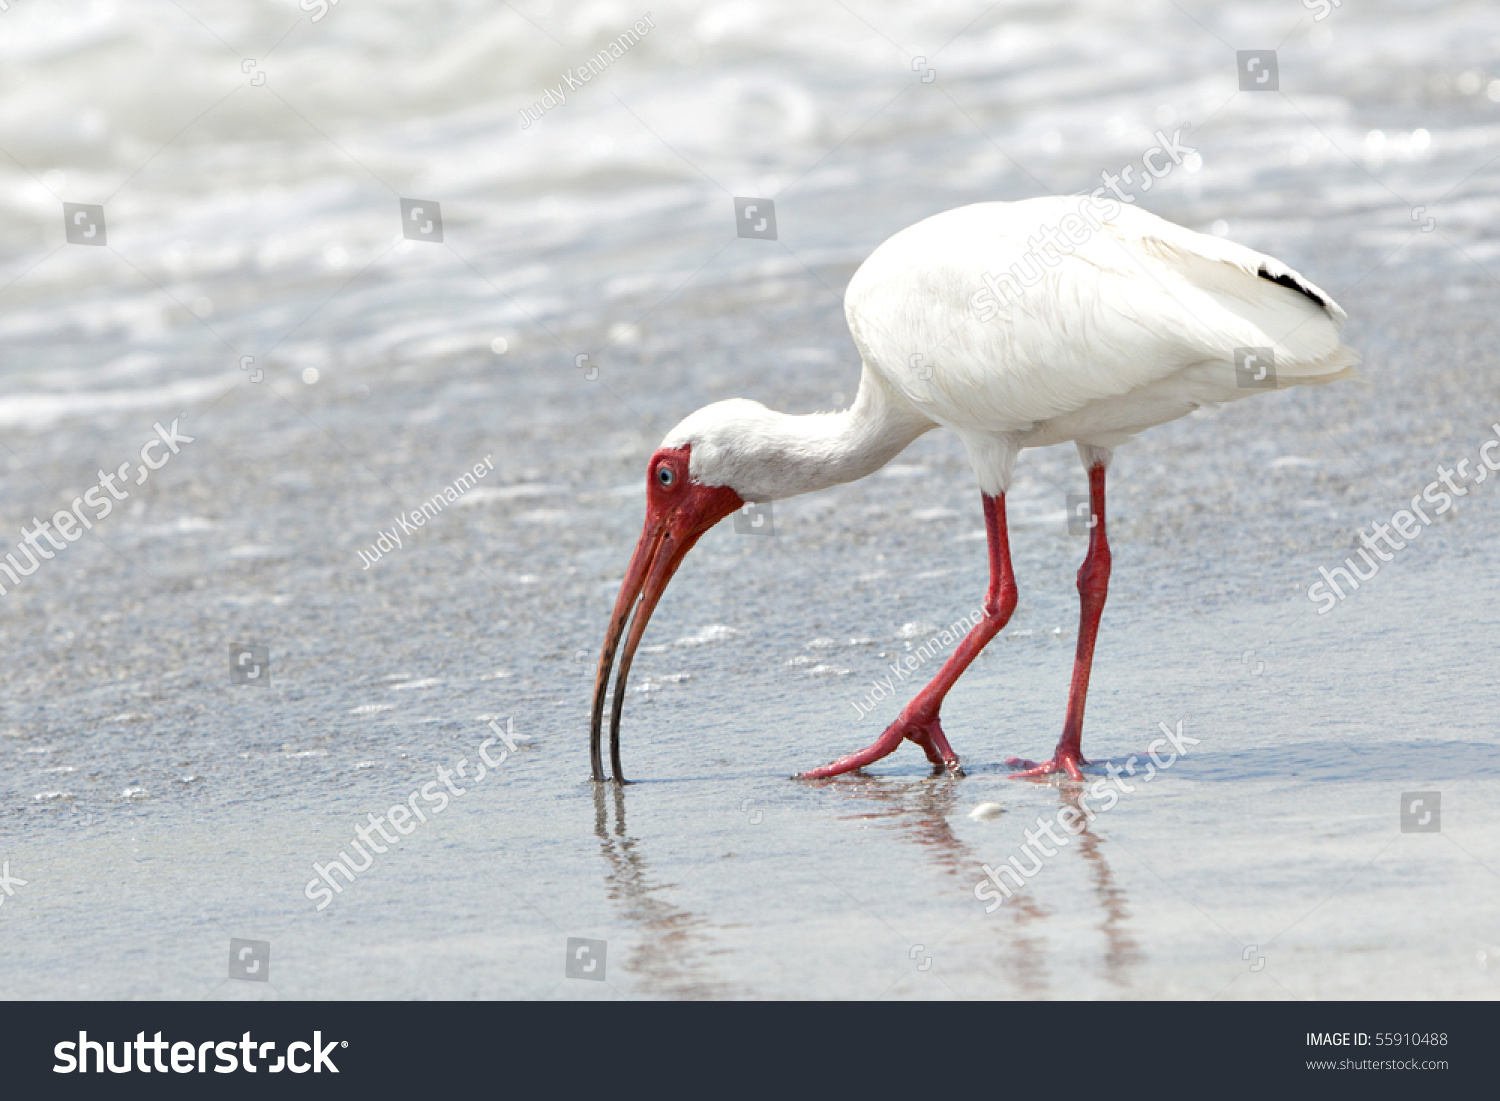 Beautiful white ibis bird orange bill stock photo 55910488 beautiful white ibis bird with orange bill and legs feeding in the surf on sandy beach buycottarizona Choice Image